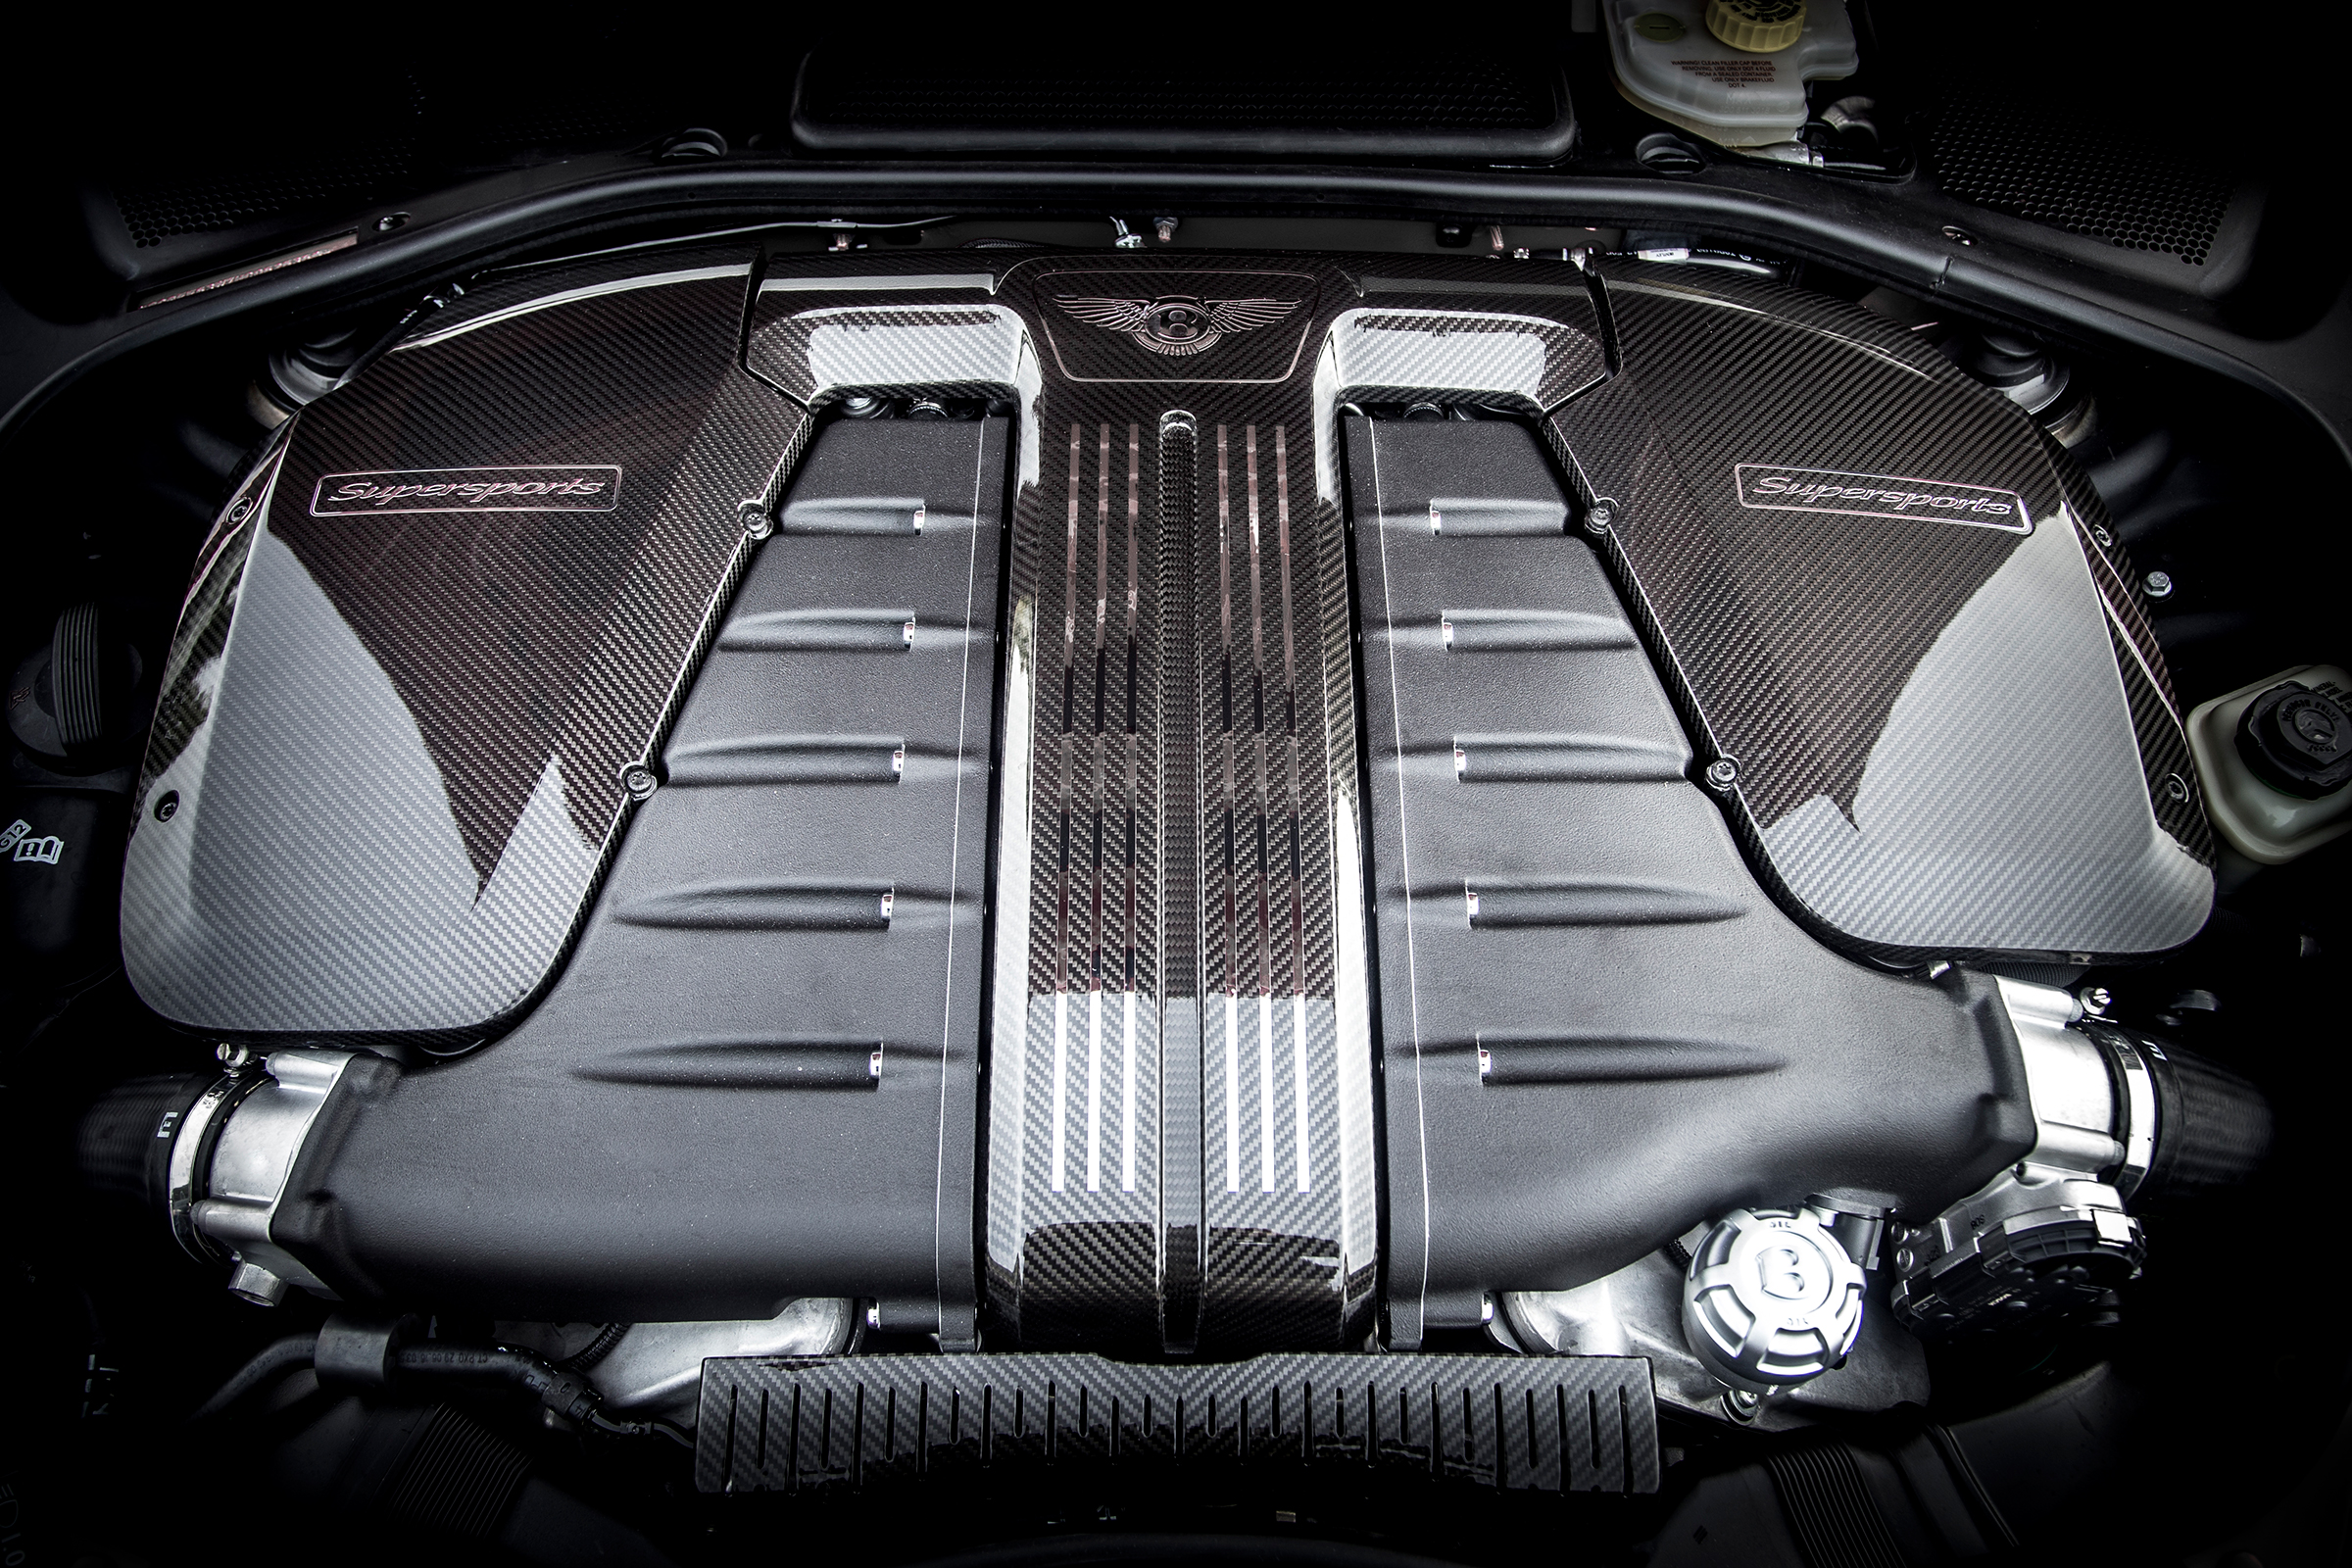 2017 Bentley Continental Supersports View Engine (Photo 30 of 31)